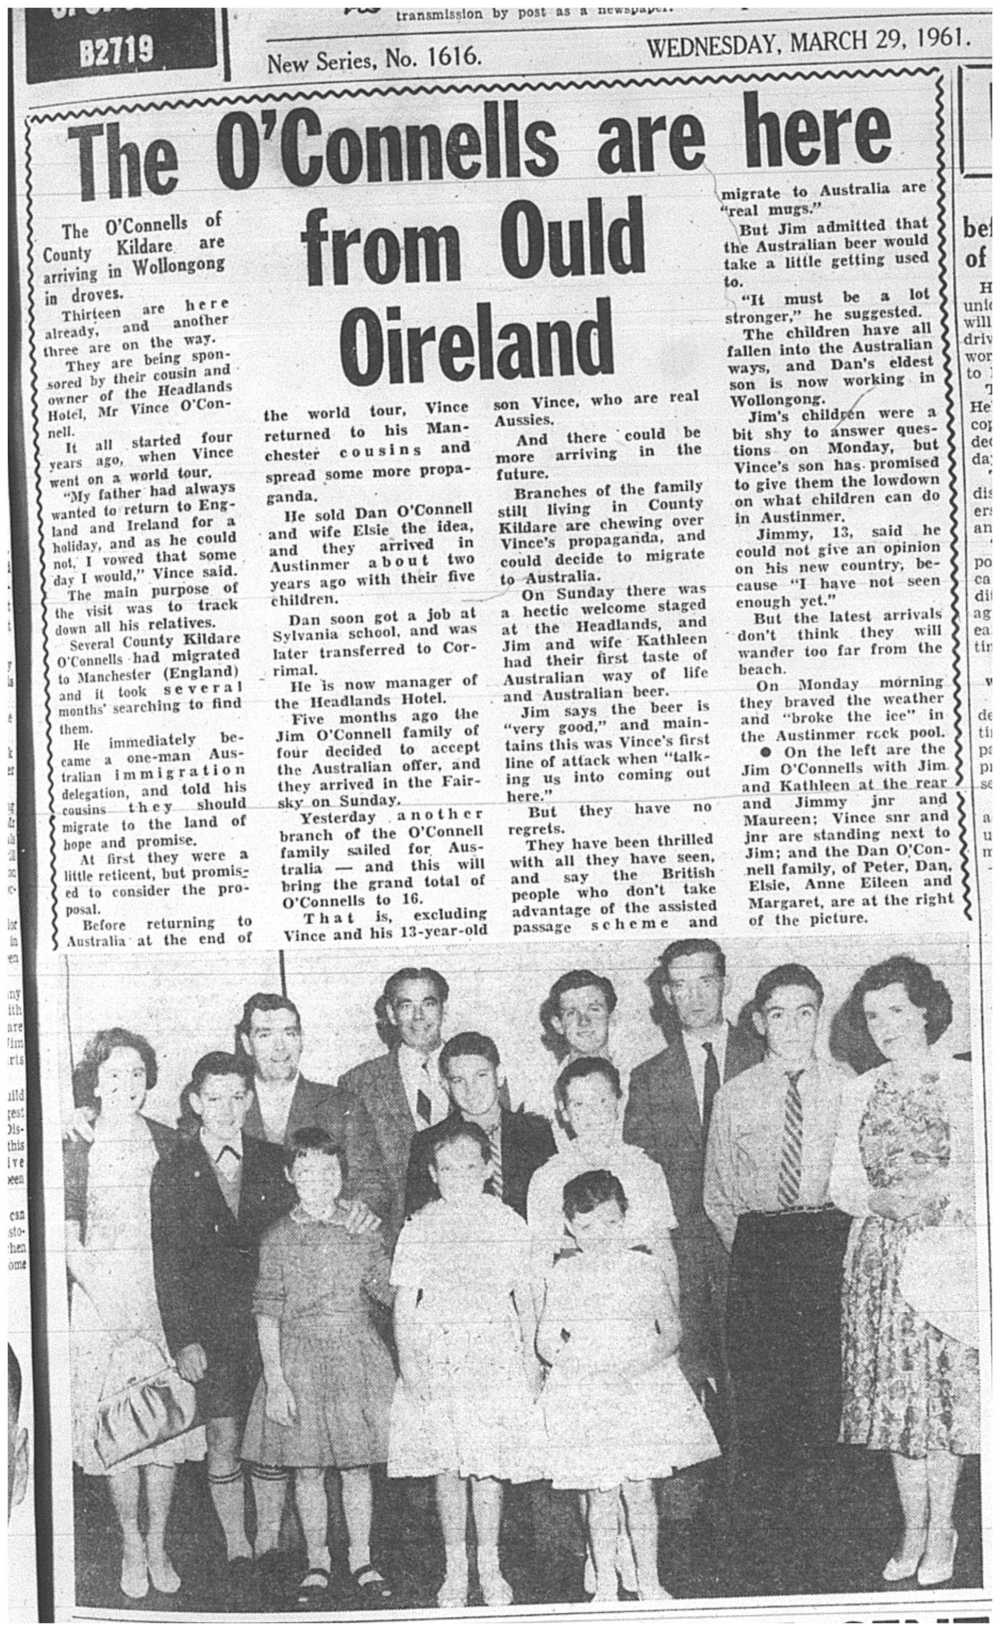 The Illawarra Mercury, 29 Mar 1961. Page 1.